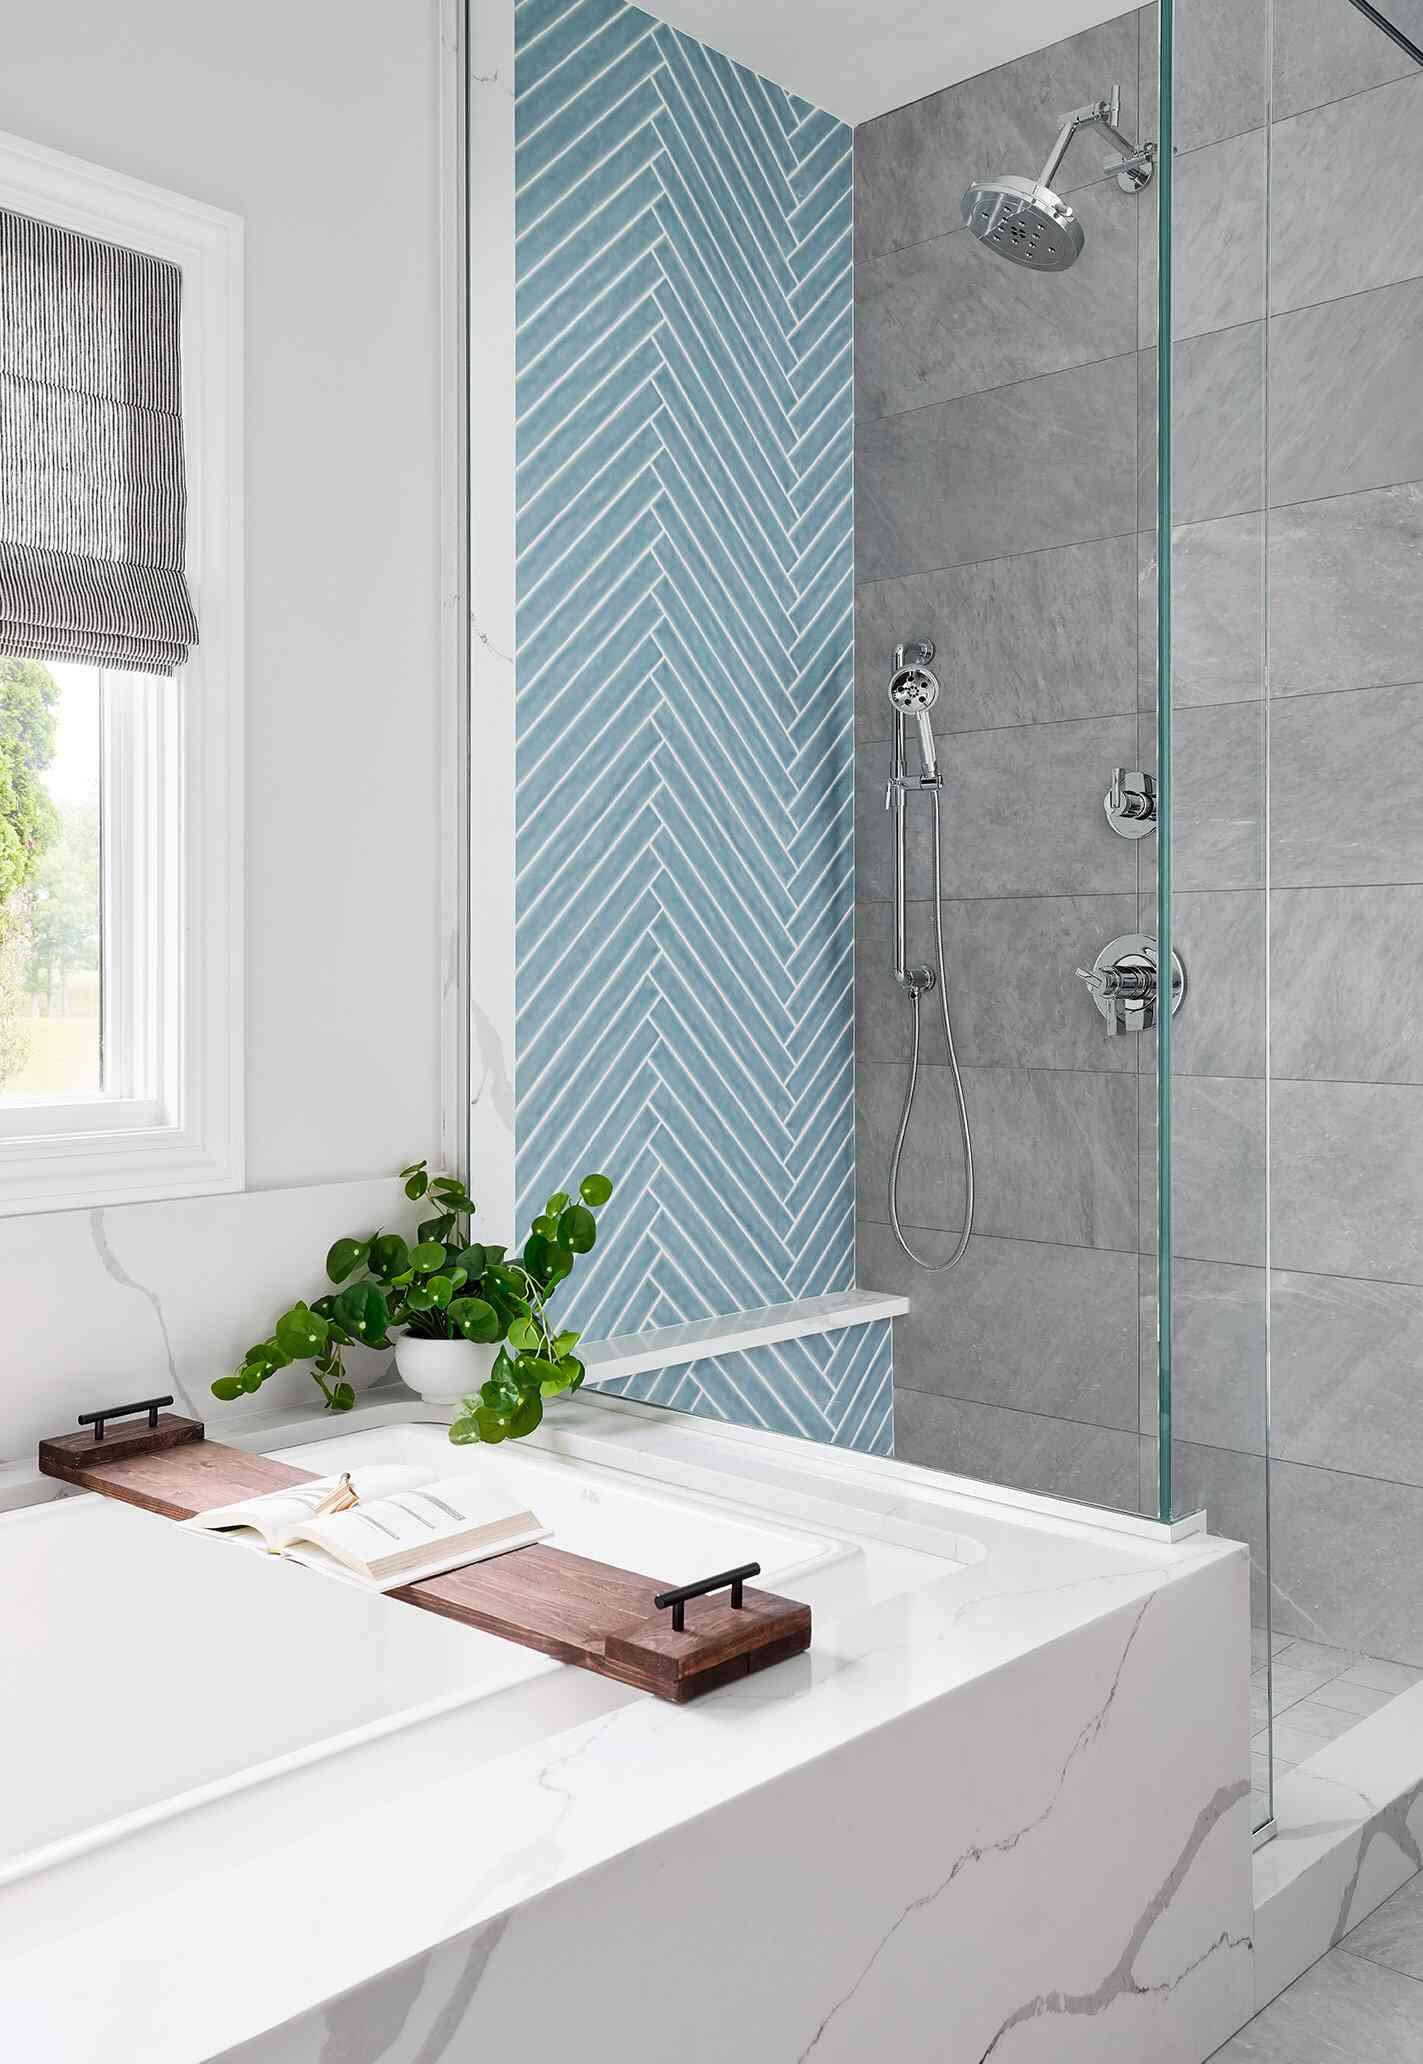 A small primary bathroom with a shower lined with two glass walls